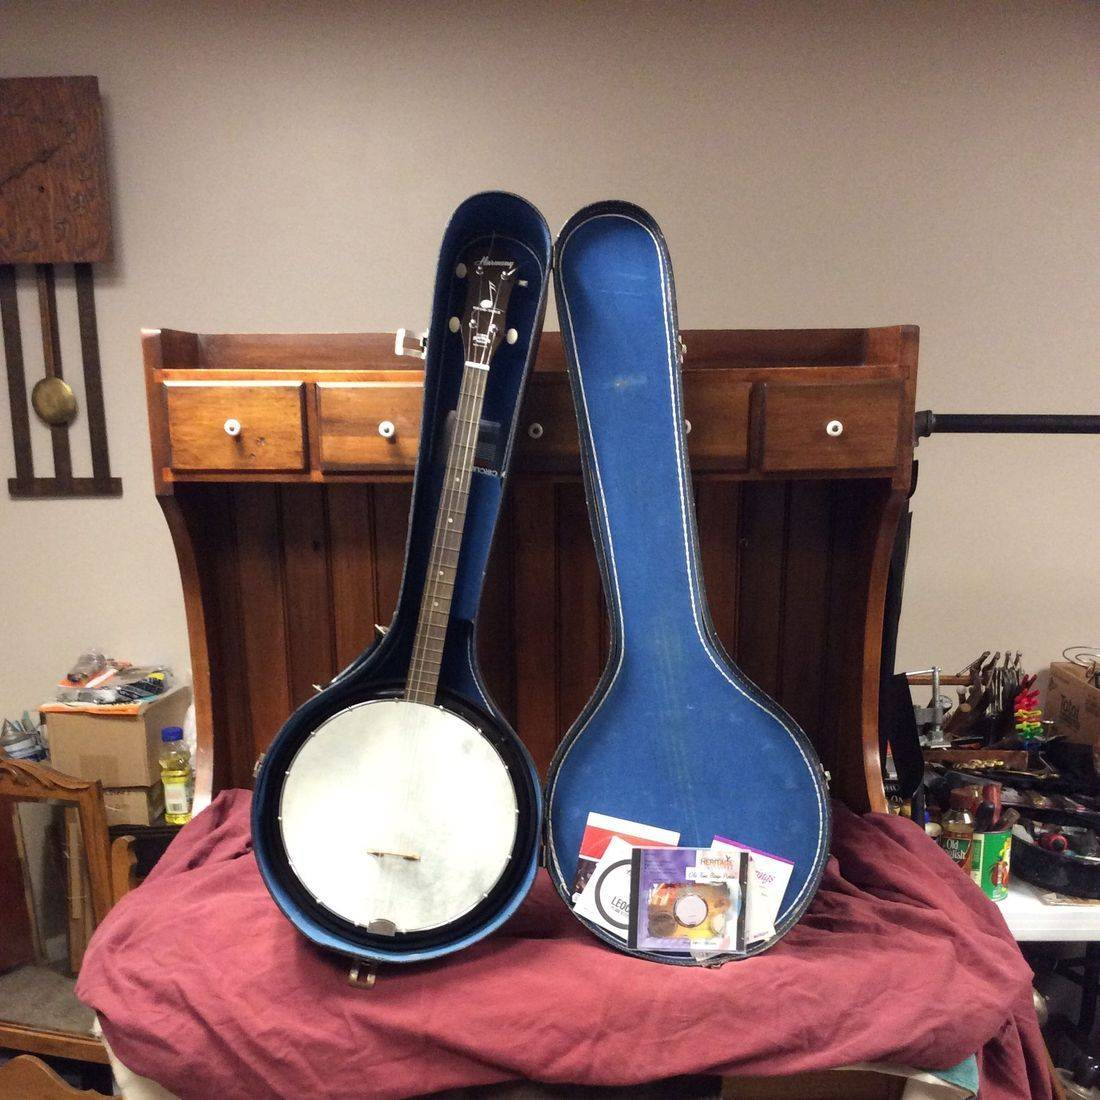 "1950's Harmony Reso-Tone, 4-String Tenor Banjo w/13"" Bakelite Resonator, Case & Extra Strings  33""L x 12"" Dia. Pot $150.00"